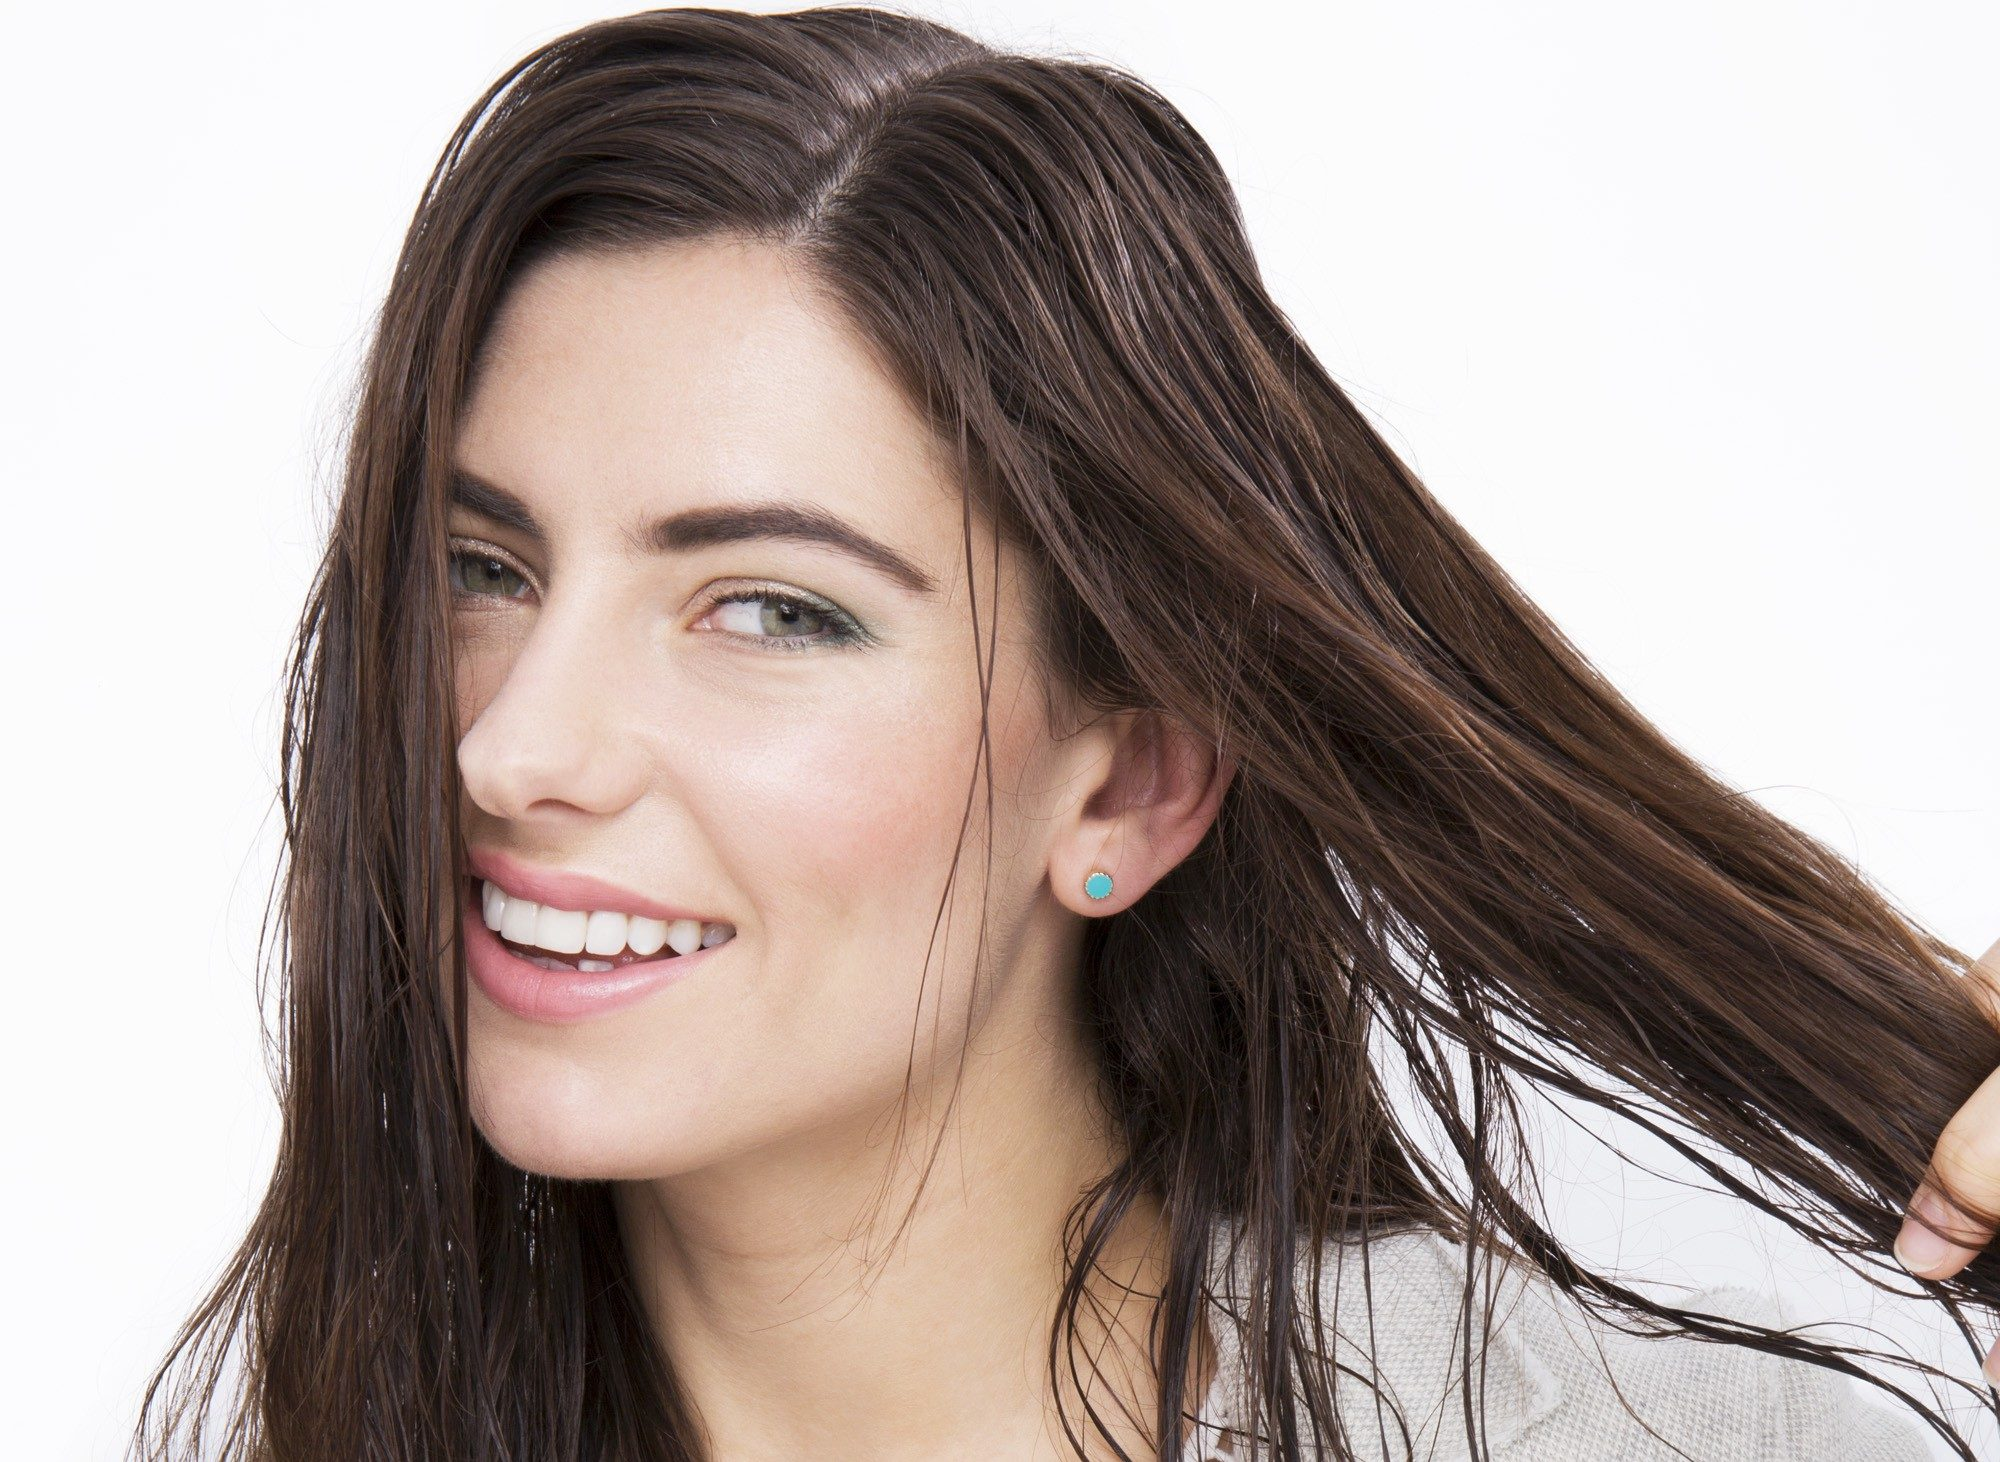 blow out hair step 1: model with damp hair, prepping hair